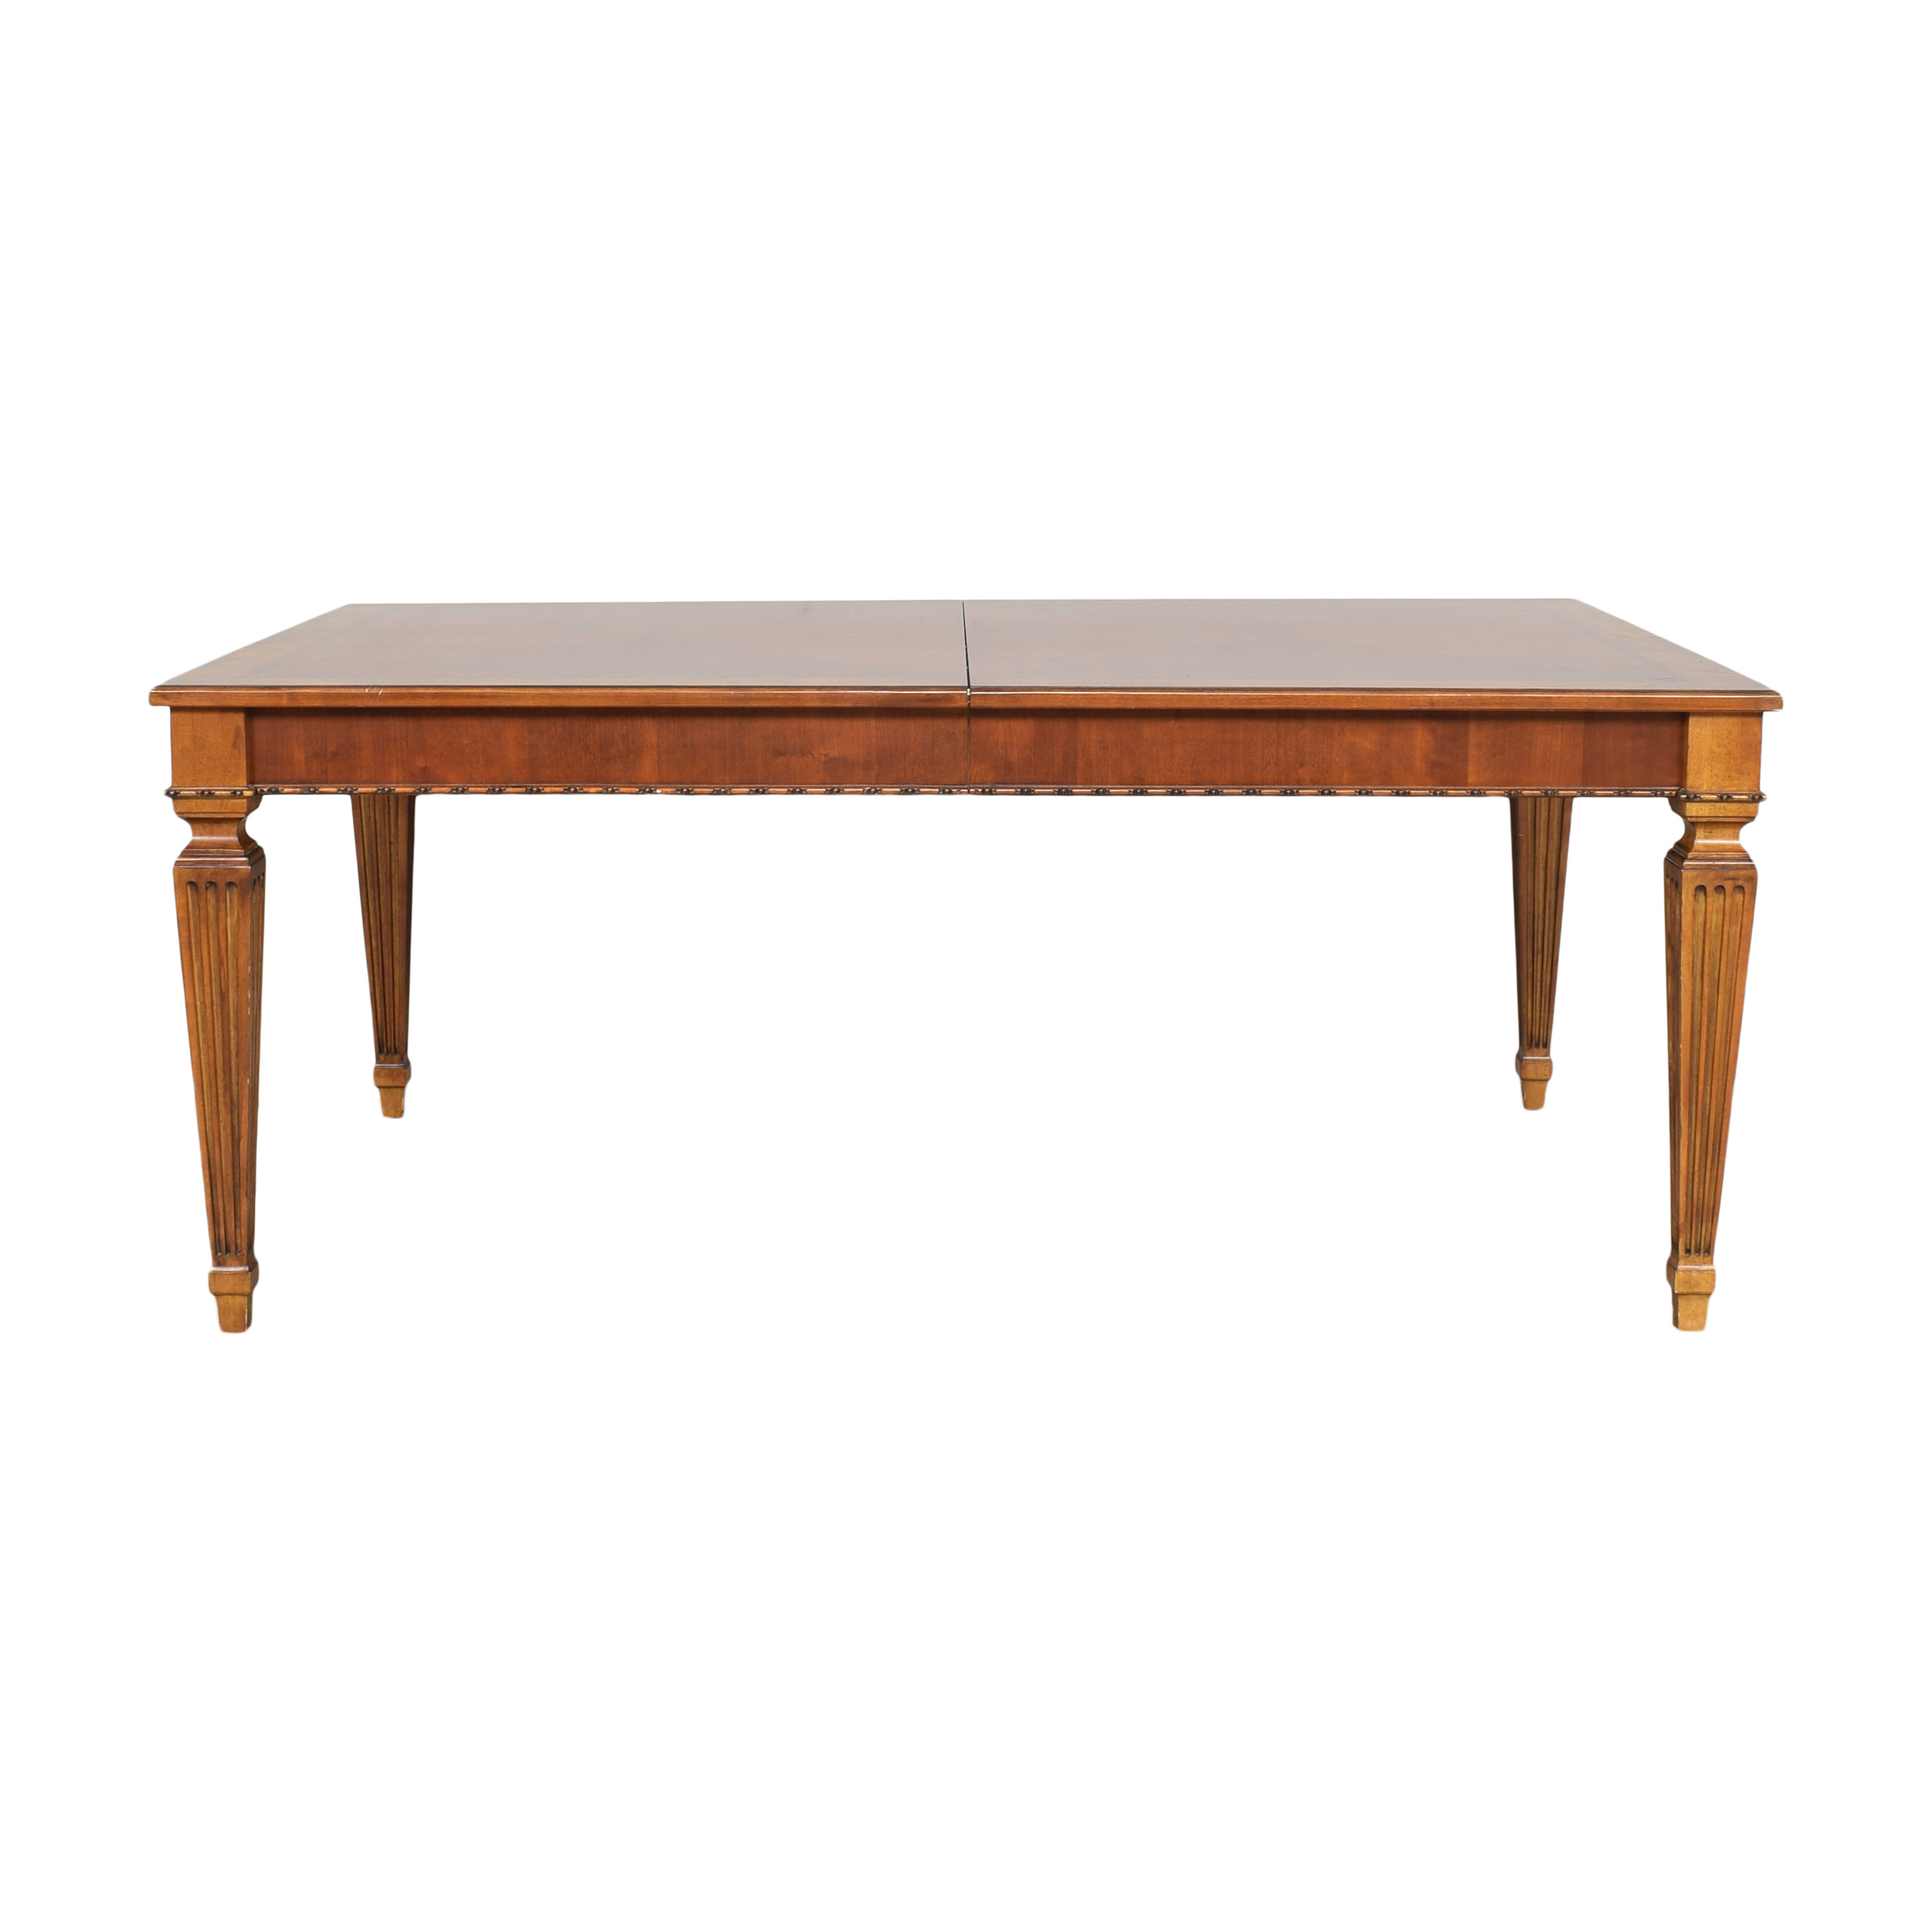 Ethan Allen Ethan Allen Goodwin Extendable Dining Table pa